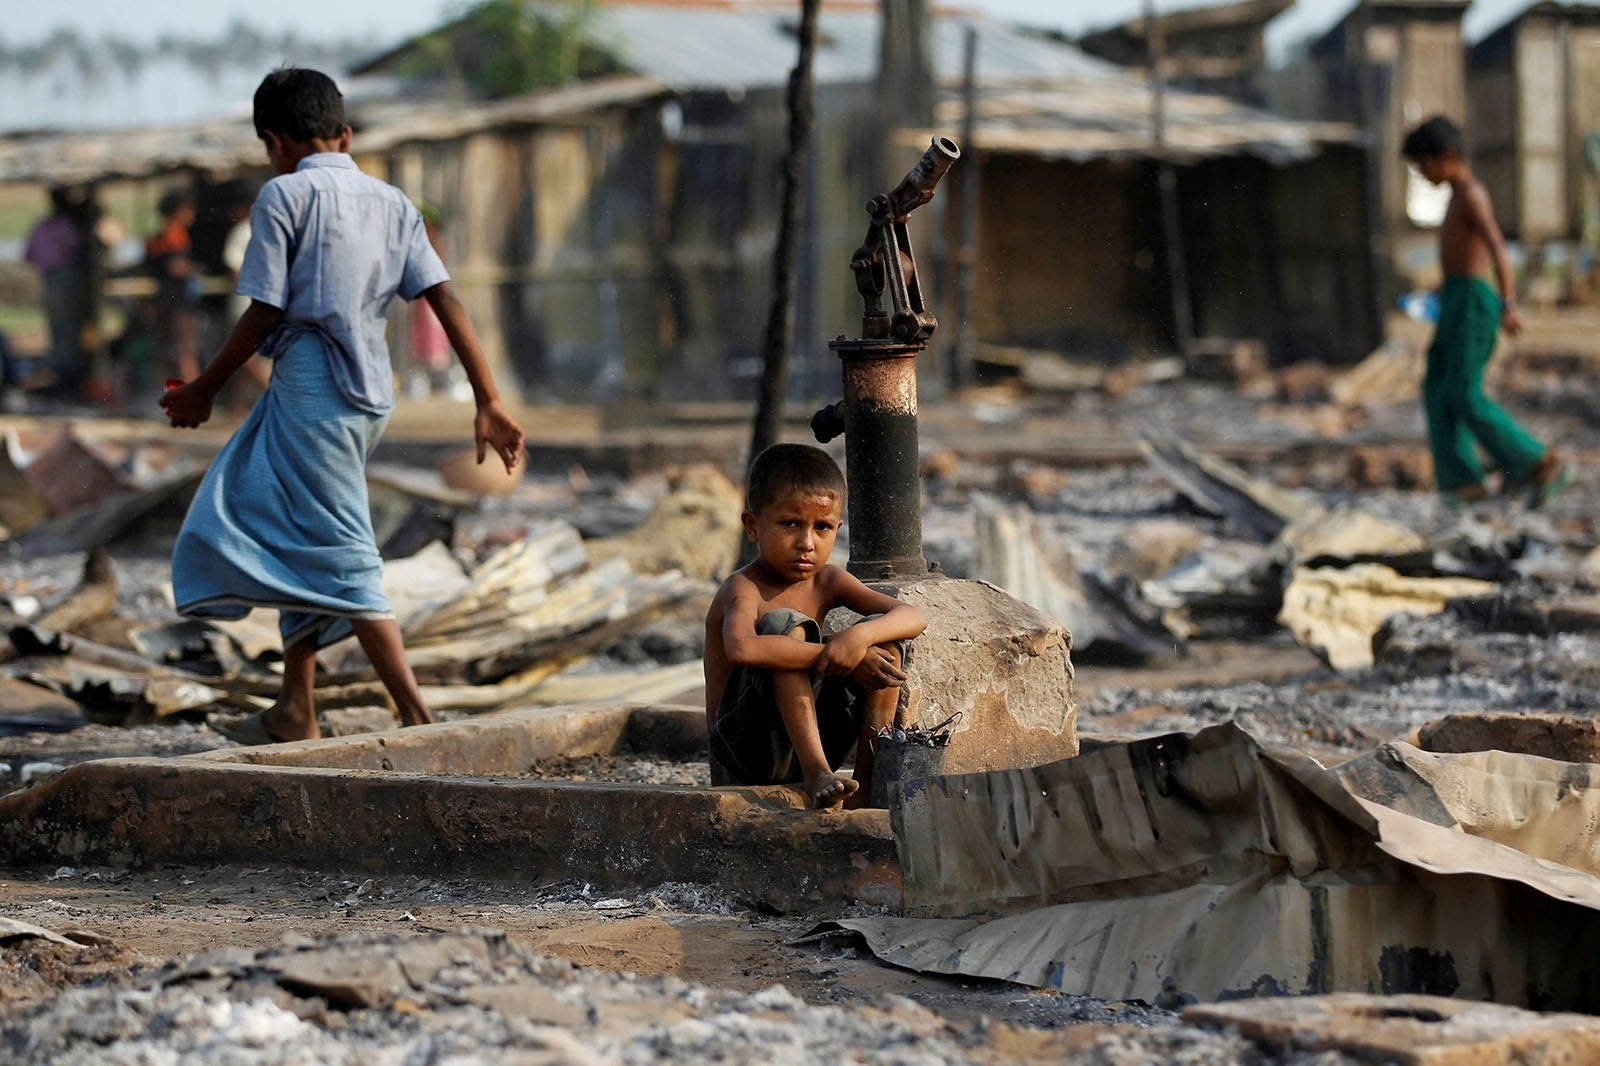 A boy sit in a burnt area after fire destroyed shelters at a camp for internally displaced Rohingya Muslims in the western Rakhine State near Sittwe, Myanmar May 3, 2016.